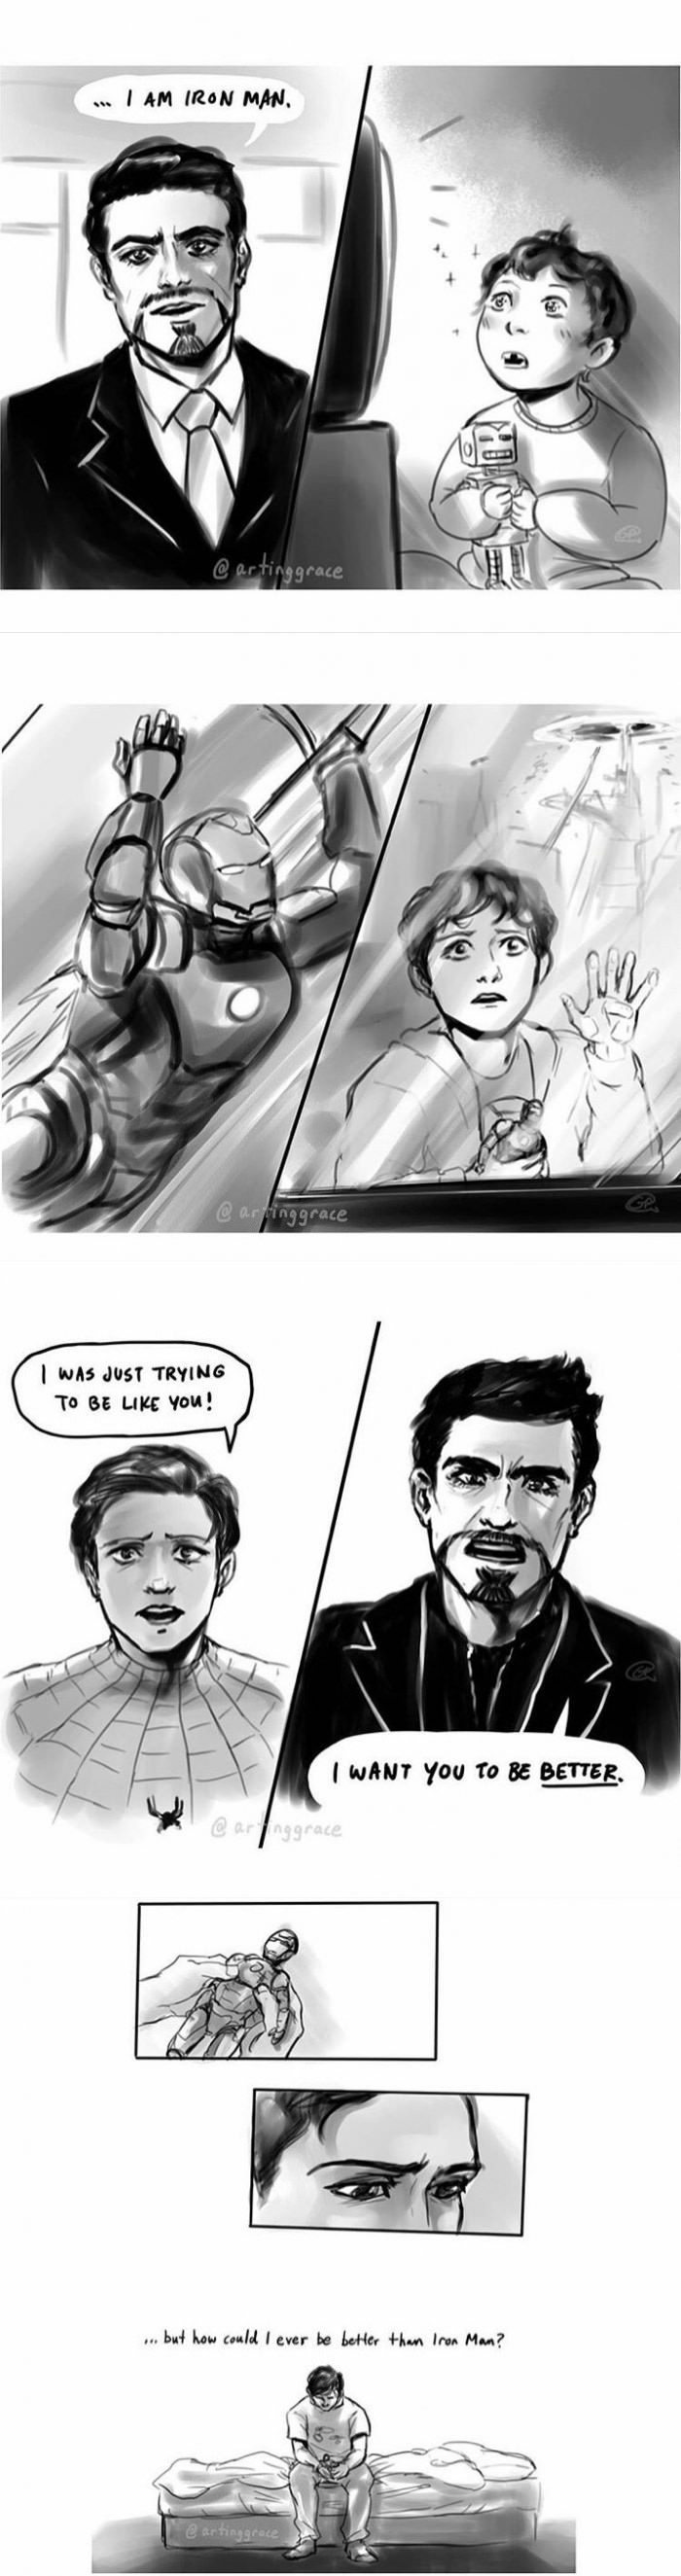 """artinggrace : [2008-2012-2017]  so its confirmed canon peter was 5 when tony said""""i am iron man"""", he was 9 when battle of new york happened and after a lifetime of hero worshipping a larger than life figure its gotta be tough to suddenly have him be your mentor (especially when said hero figure doesnt consider himself heroic and really hates himself)"""